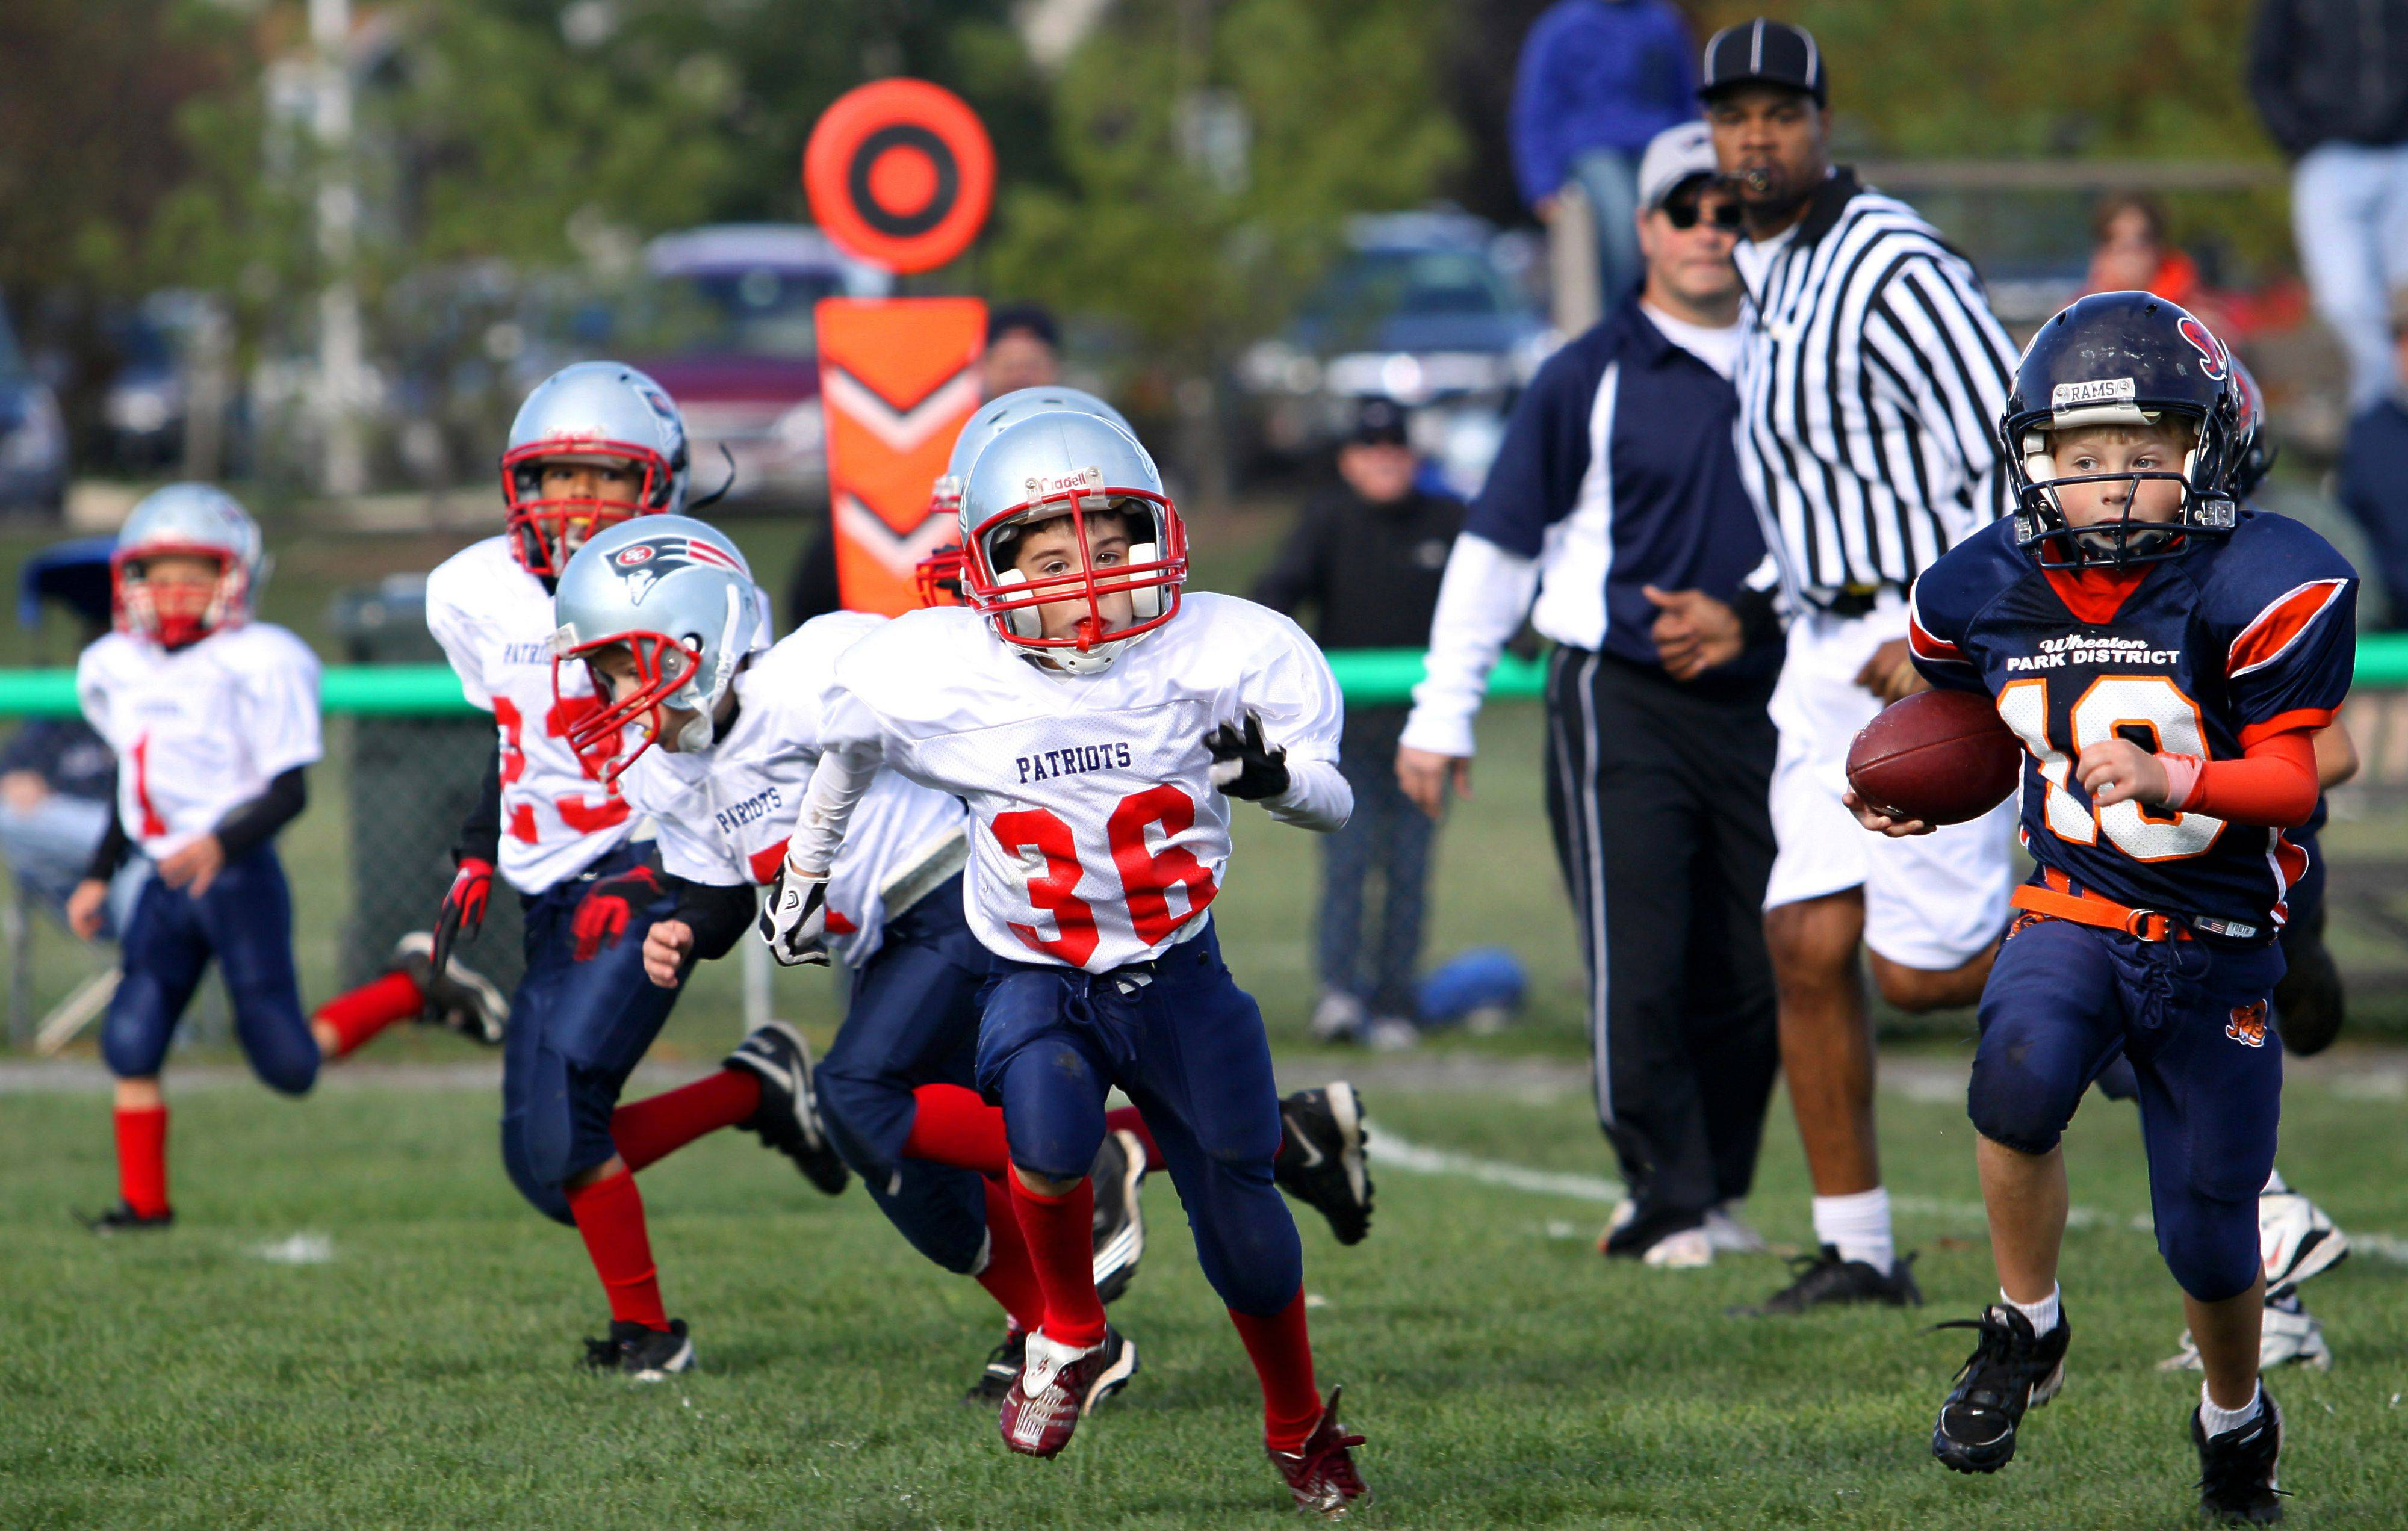 Young football players race down the field during a South Elgin Patriots football game.